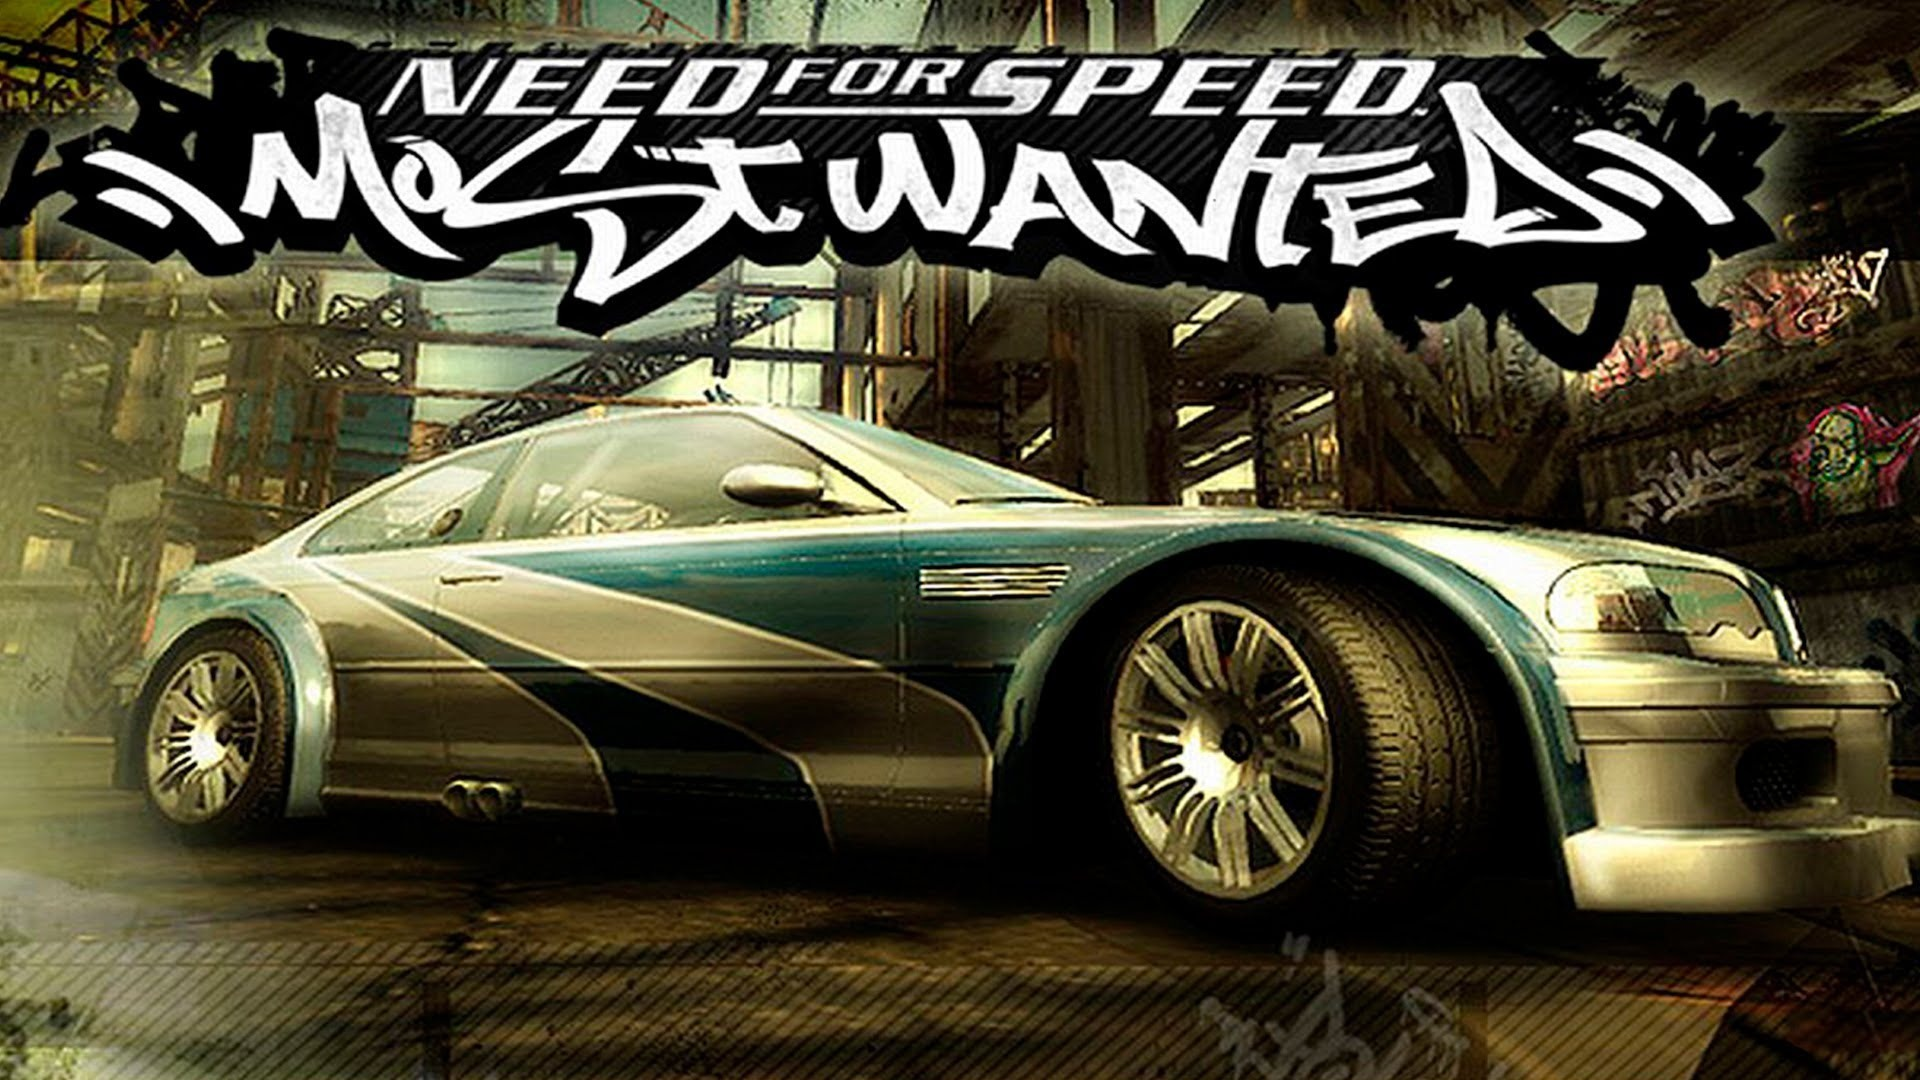 Читы в Nfs Most Wanted